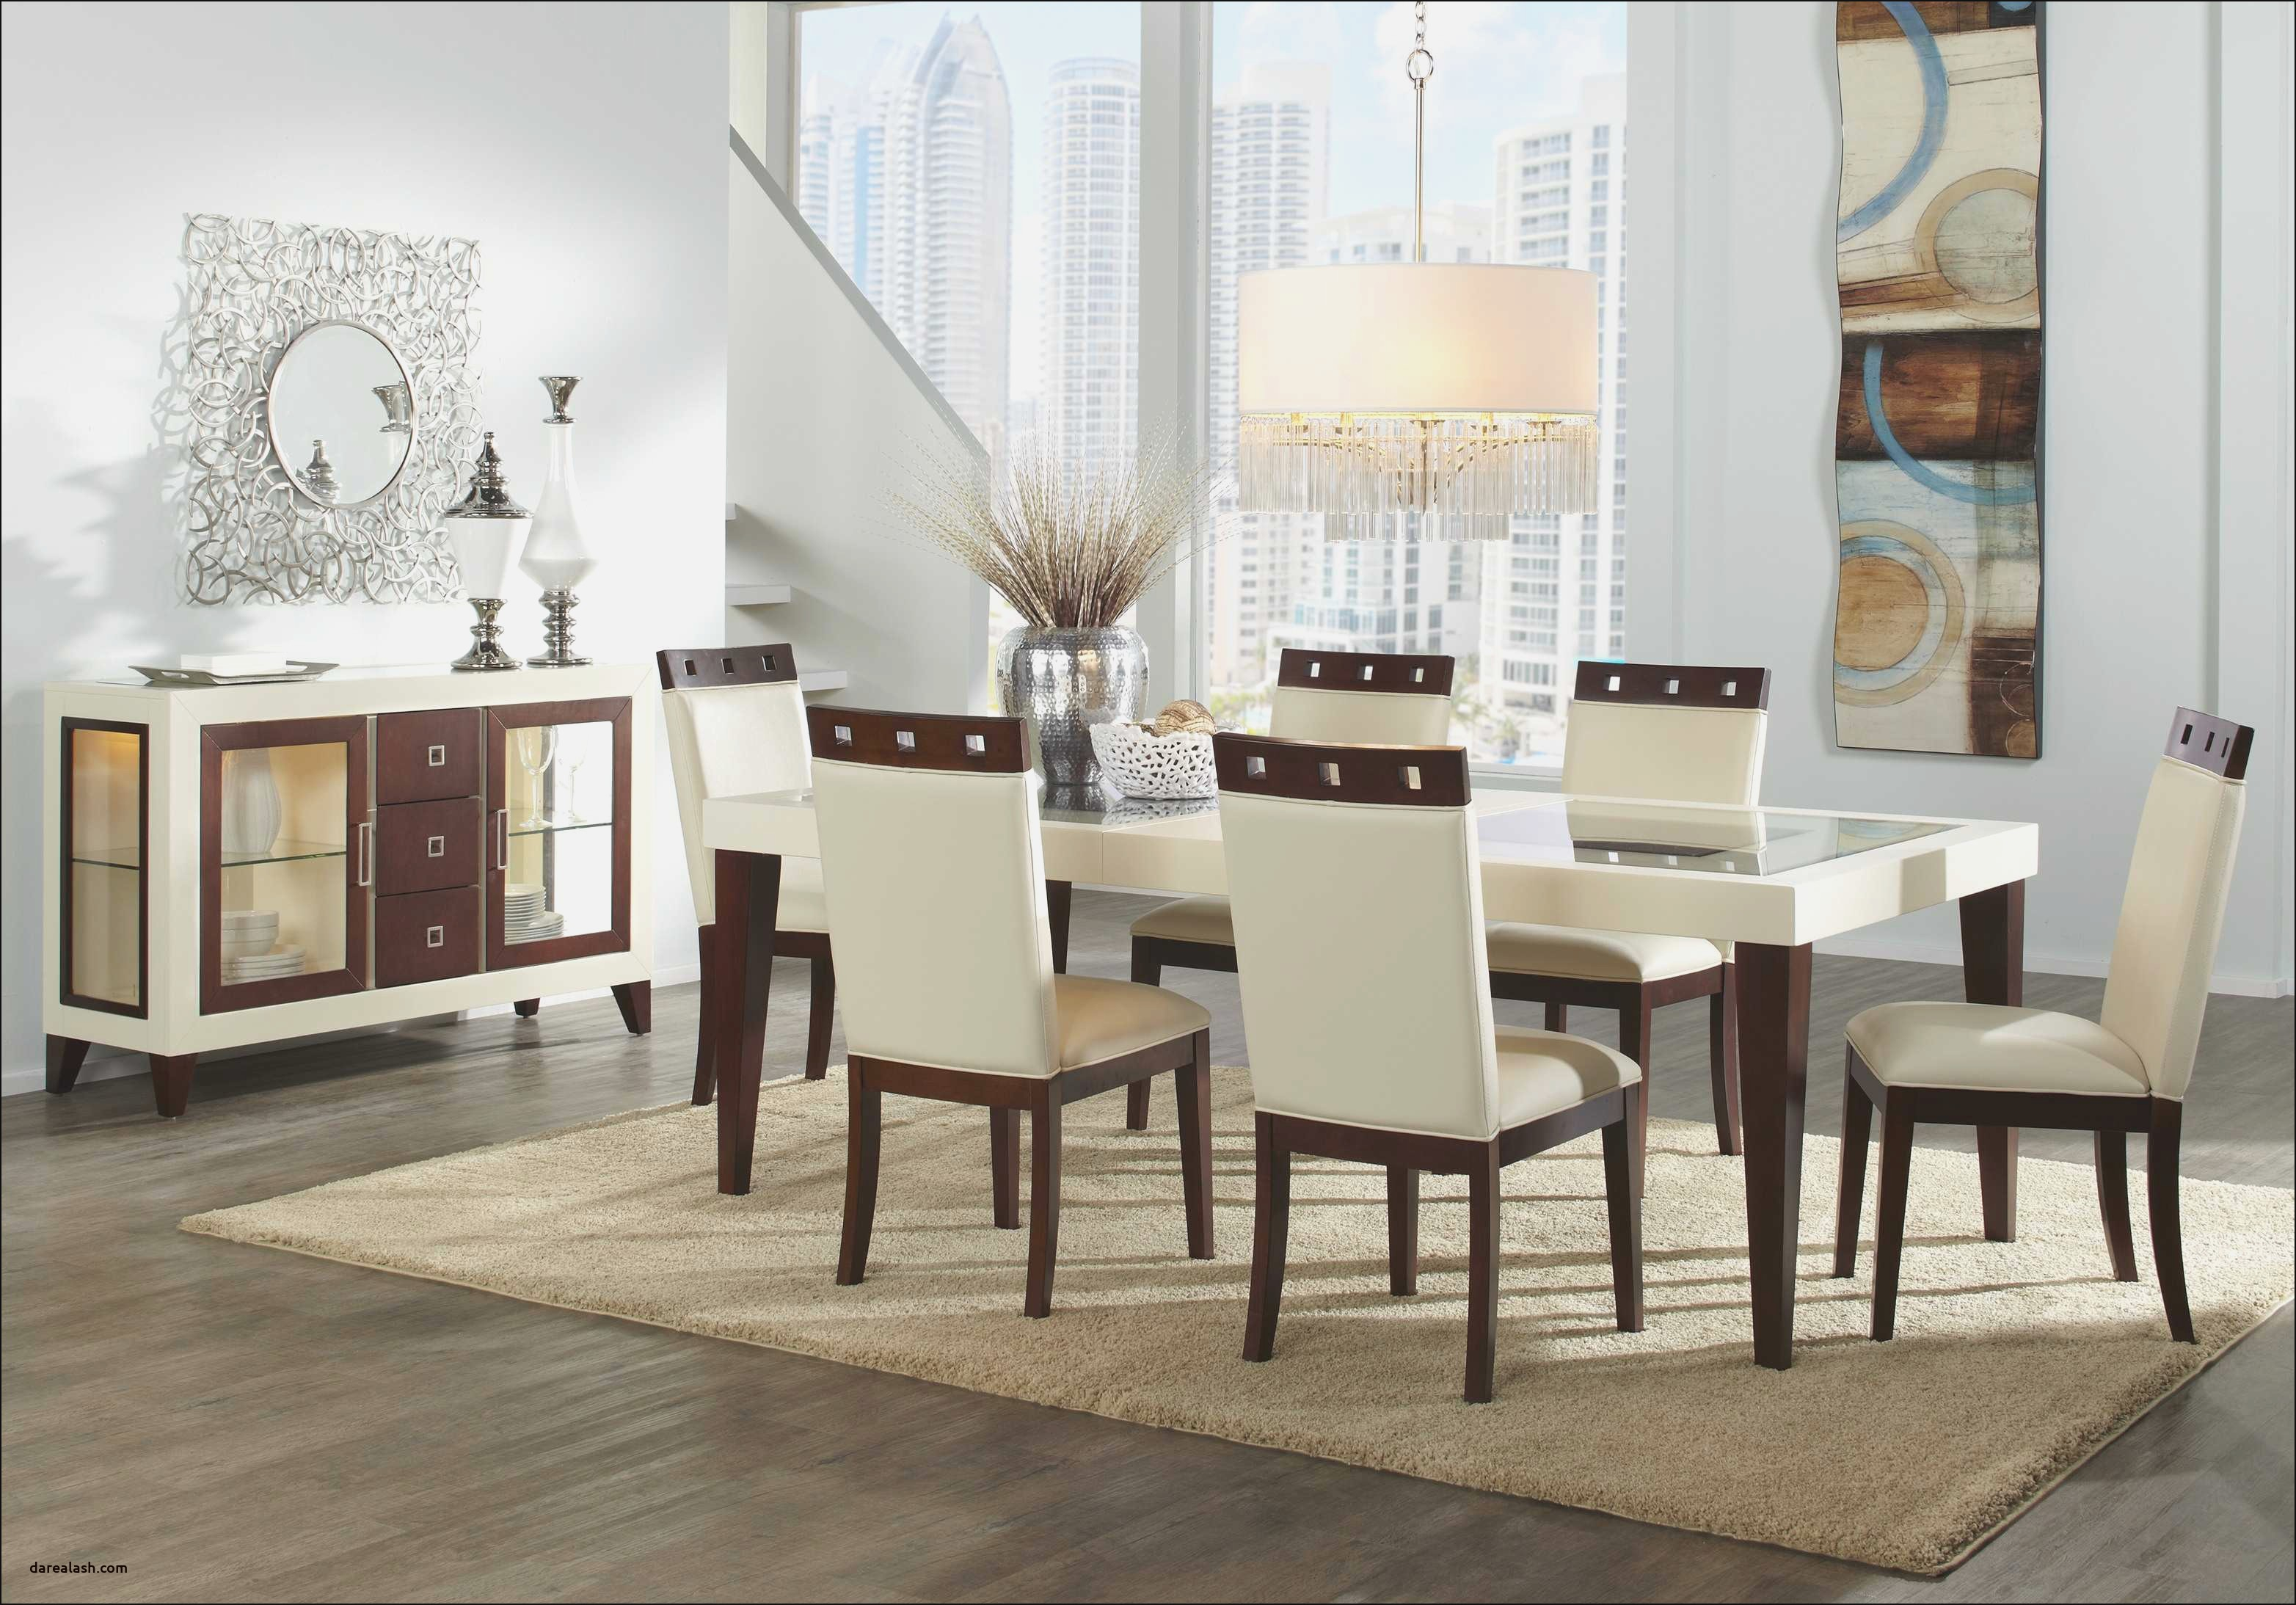 Elegant Rooms To Go Dining Chairs Darealash for 10 Awesome Tricks of How to Makeover Room To Go Living Room Sets